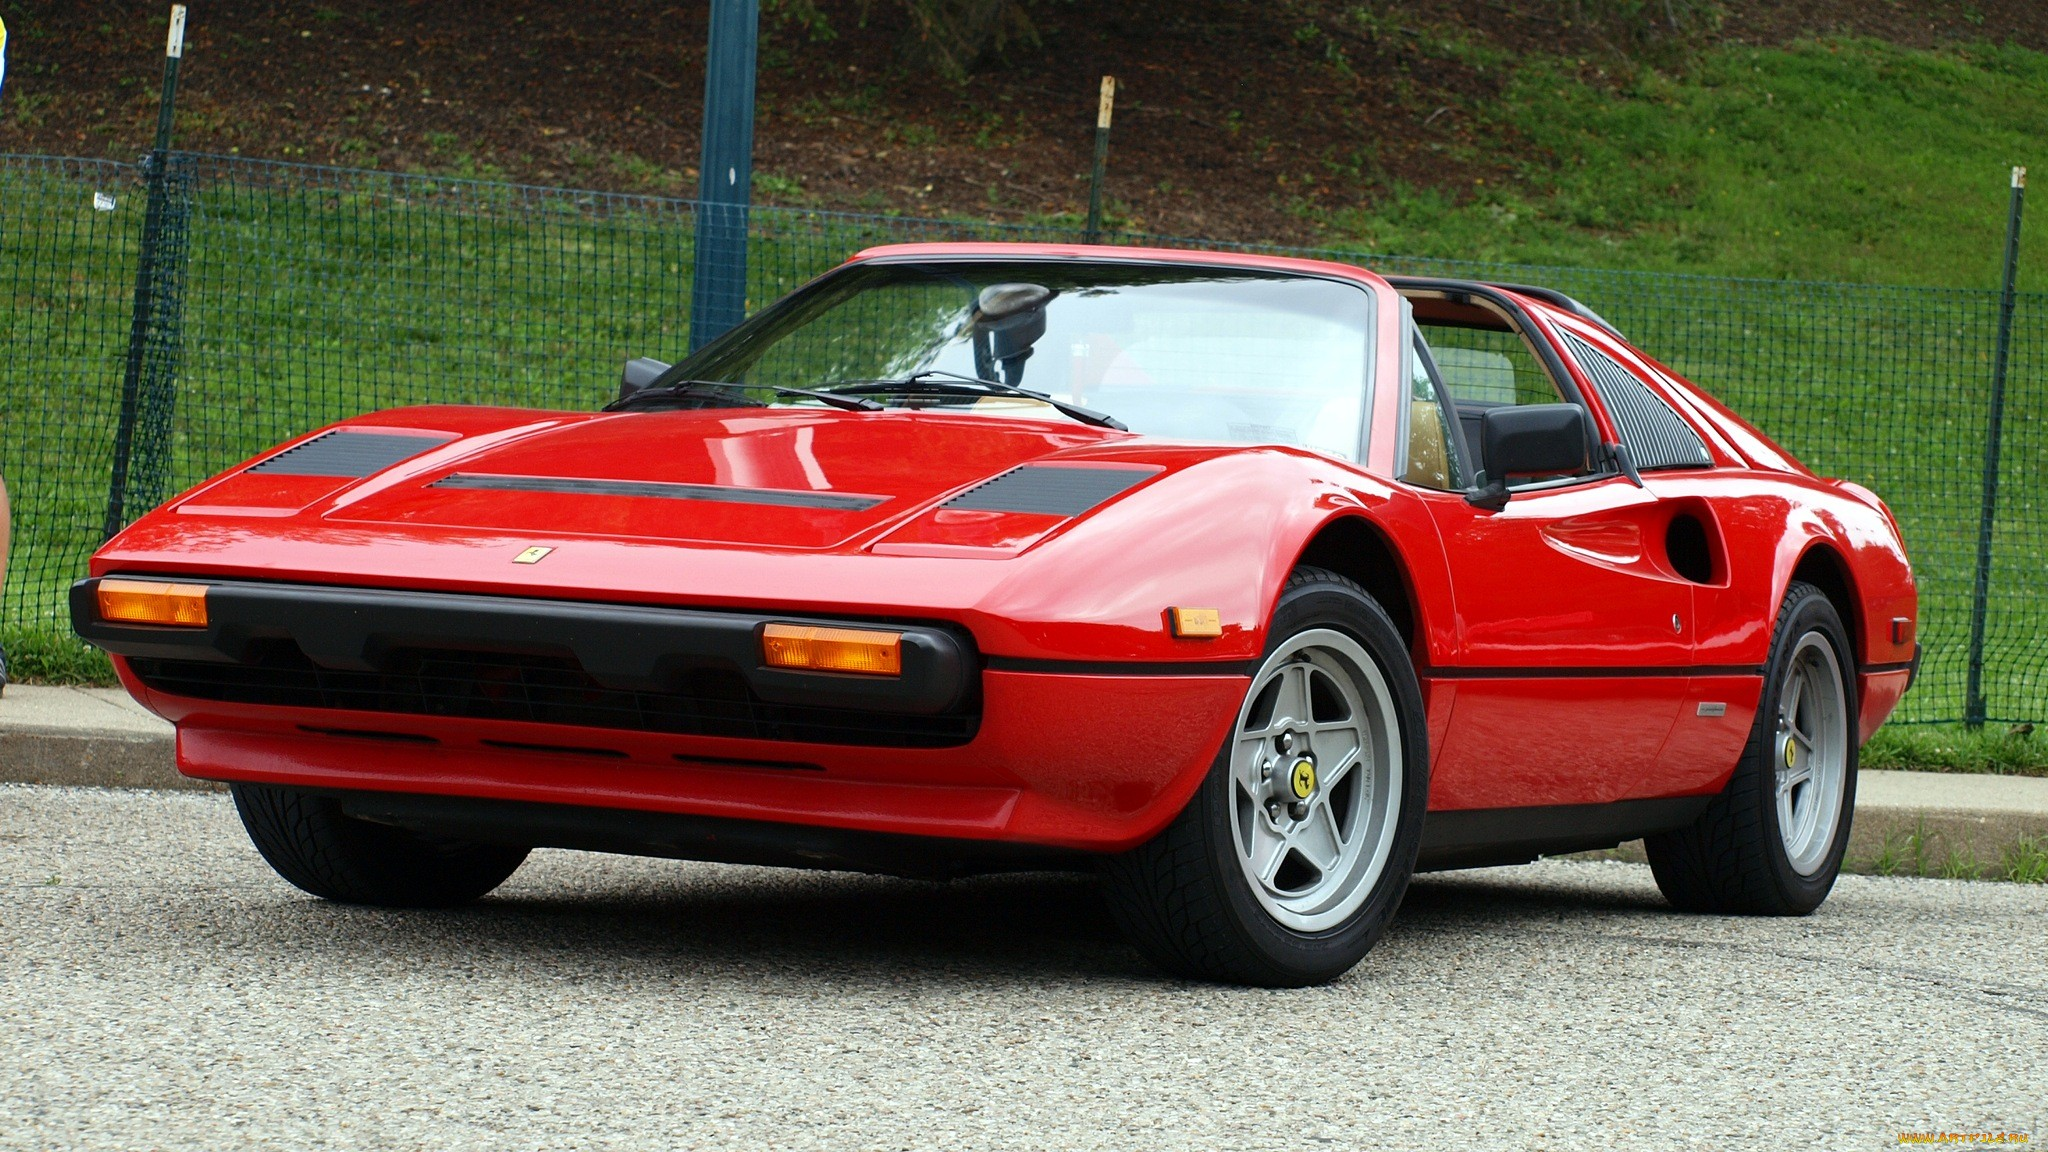 Super Hd Wallpapers Ferrari 308 Supercar Red Roads Wallpaper 2048x1152